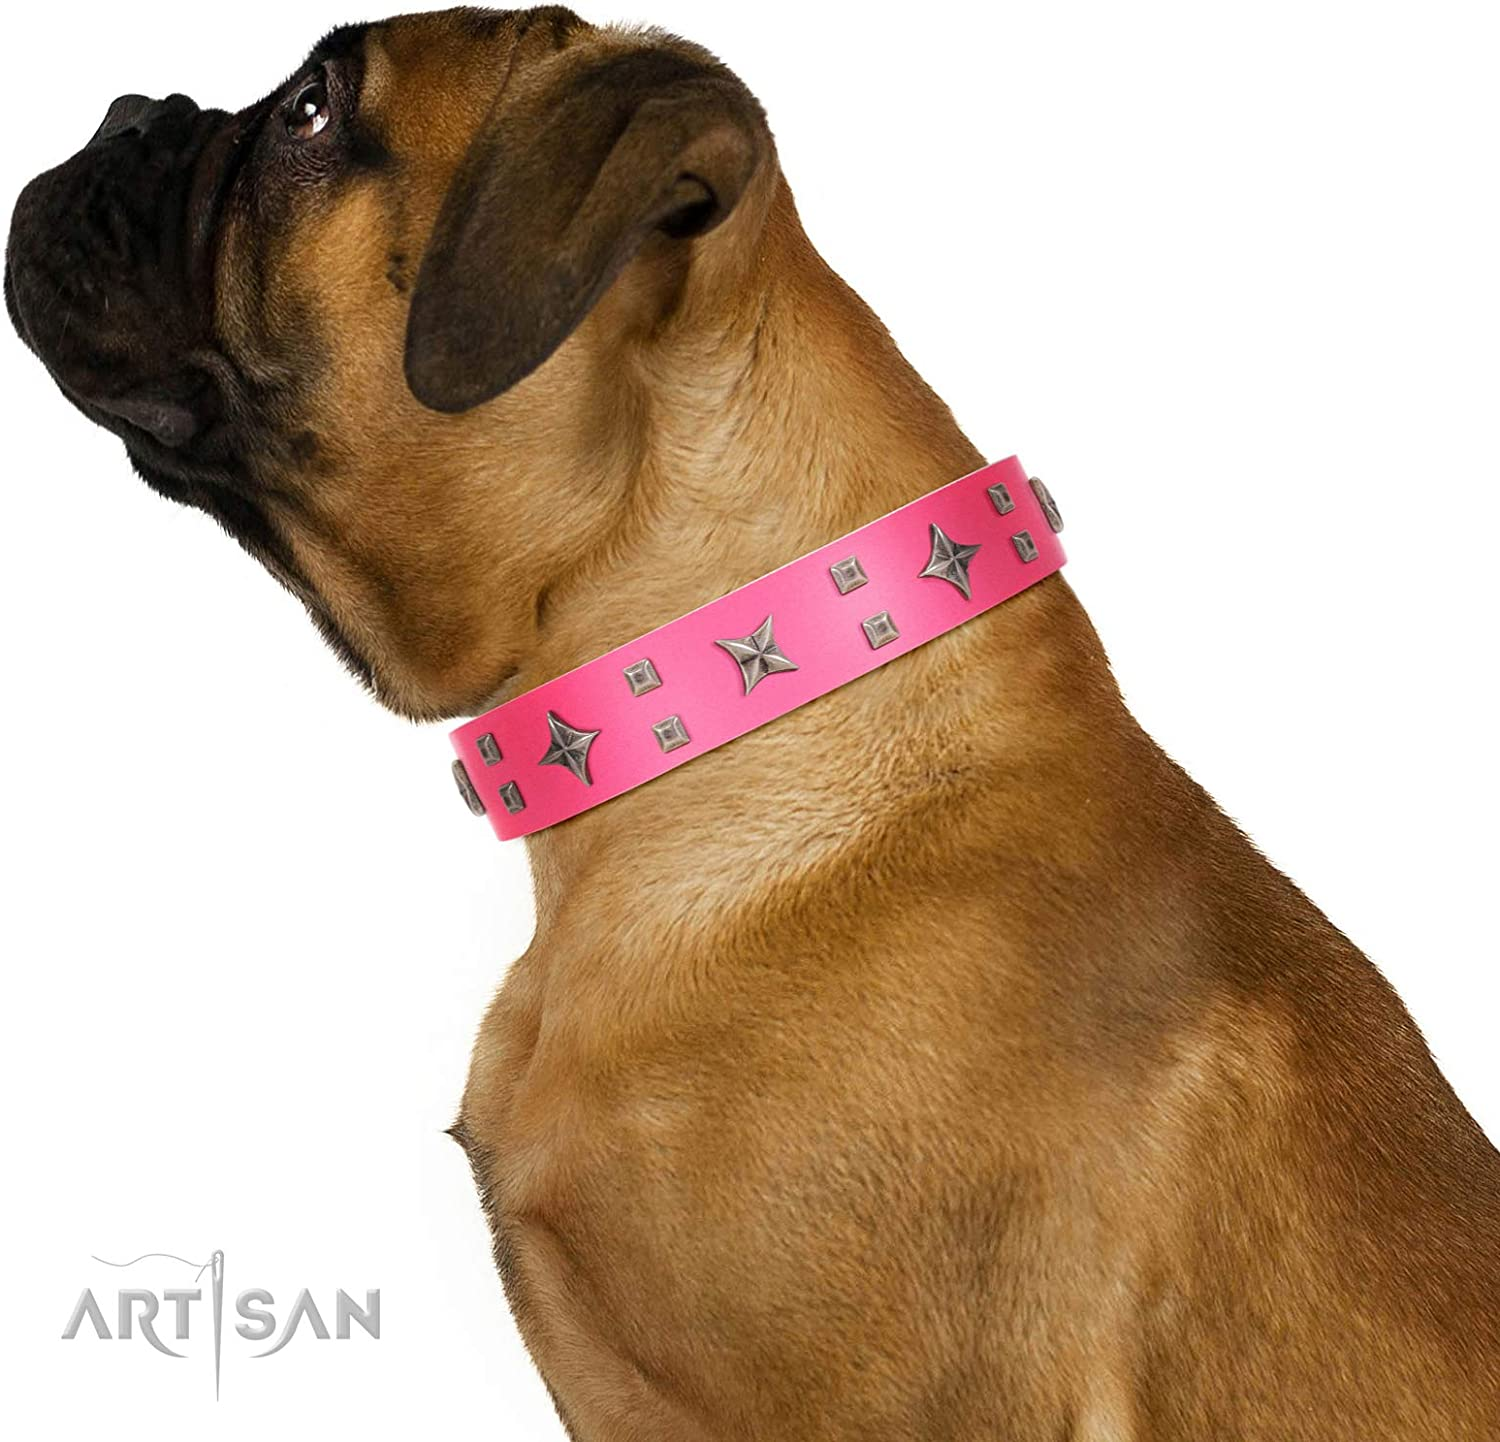 FDT Artisan 24 inch Designer Pink Leather Dog Collar with Exclusive Decorations  Stars in Pink Dreams  1 1 2 inch (40 mm) Wide